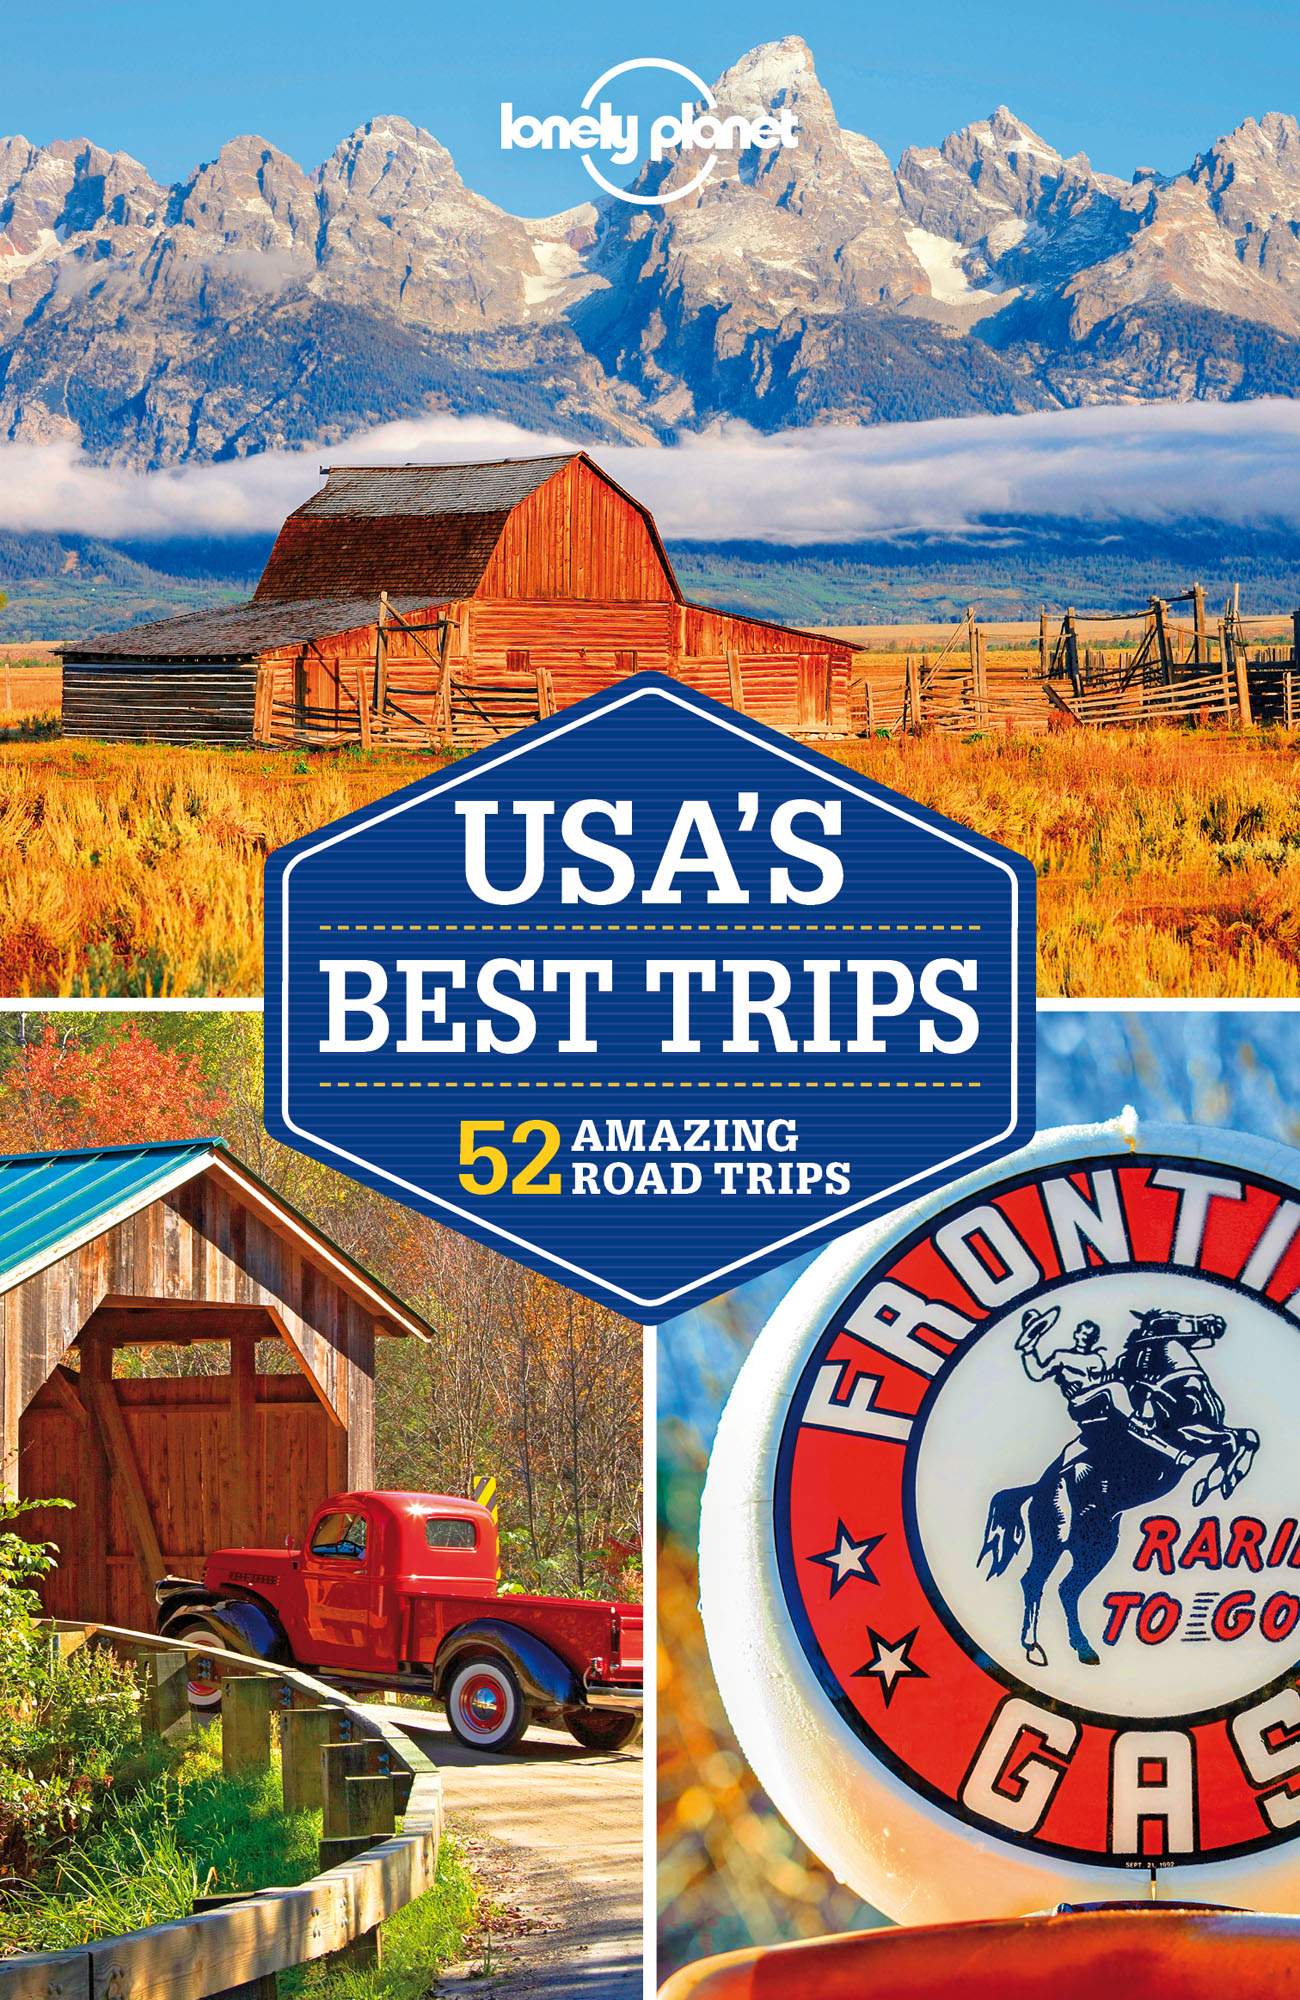 USA Best Trips průvodce 3rd 2018 Lonely Planet